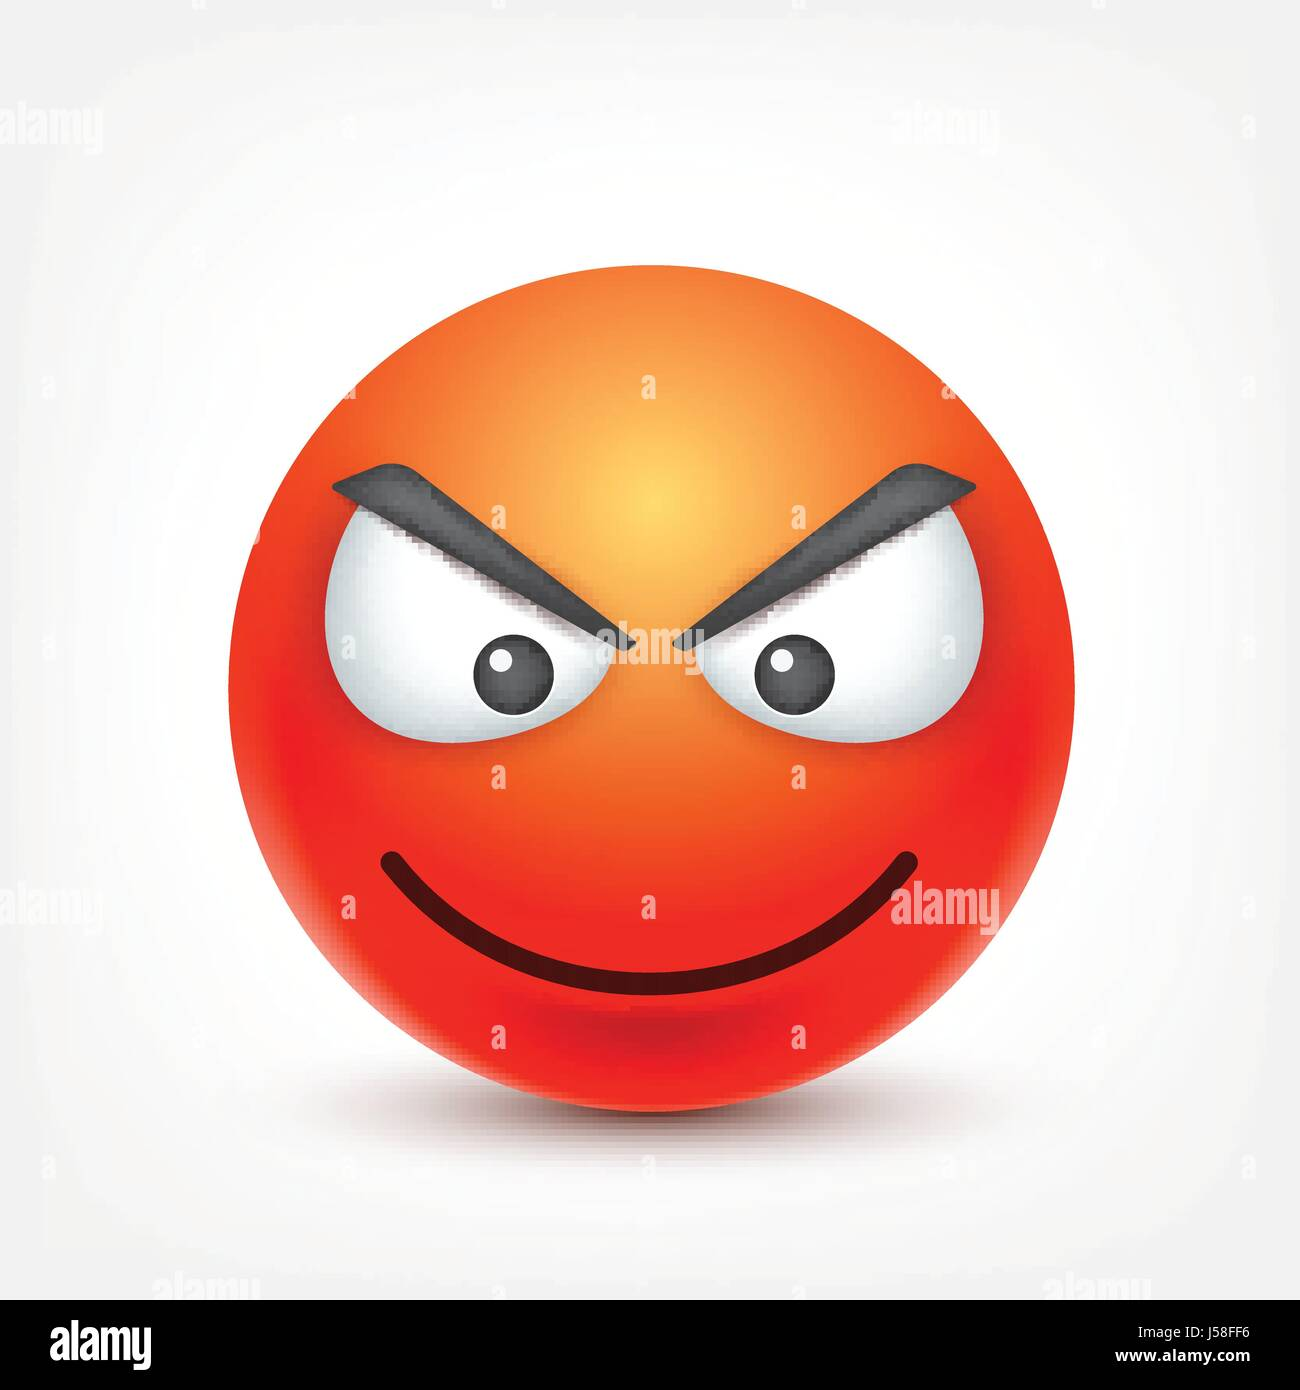 smiley,angry emoticon. red face with emotions. facial expression. 3d